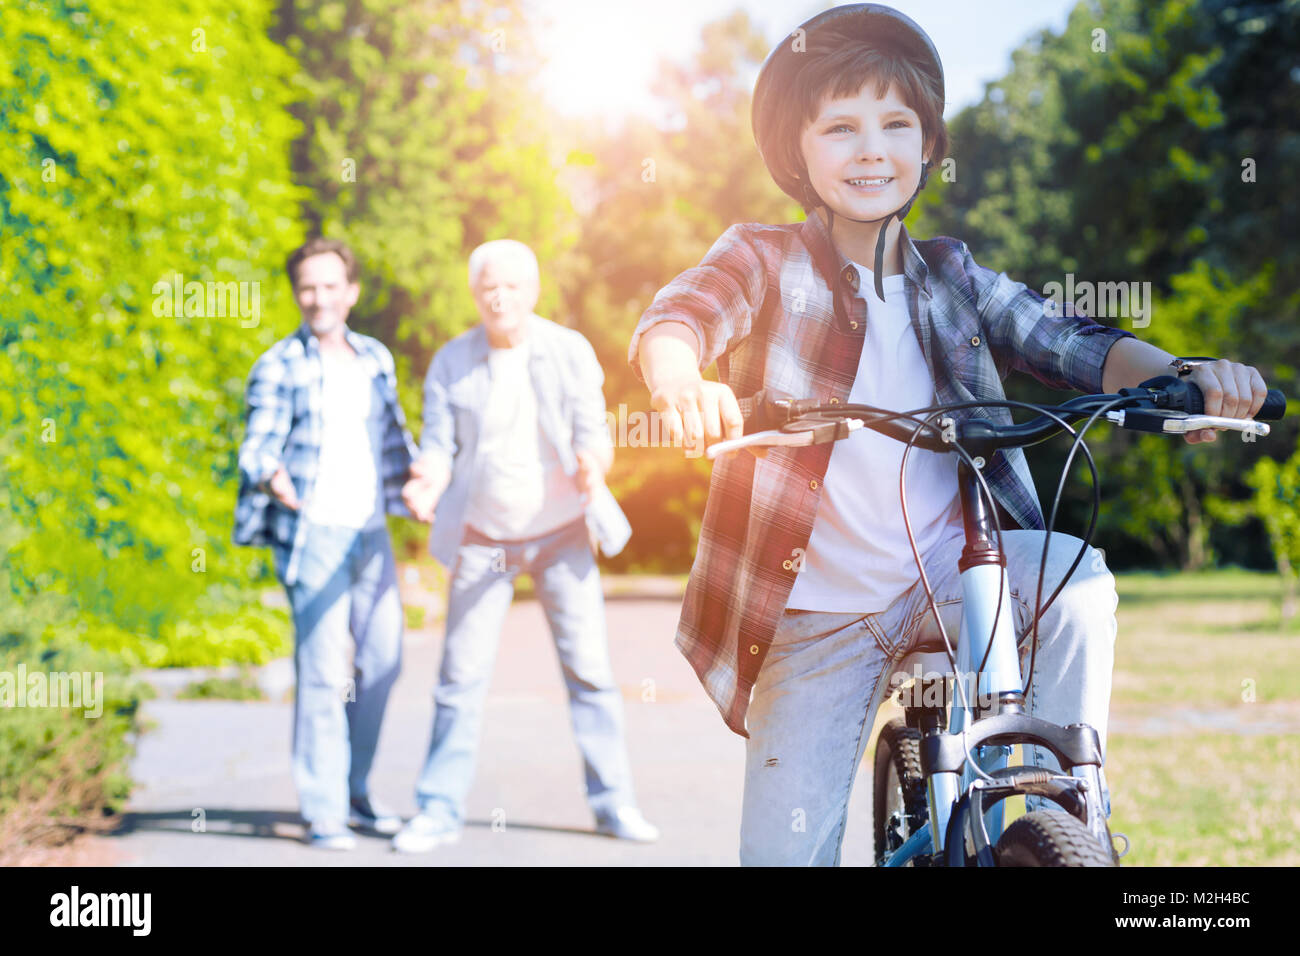 Excited kid learning to ride bicycle outdoors - Stock Image